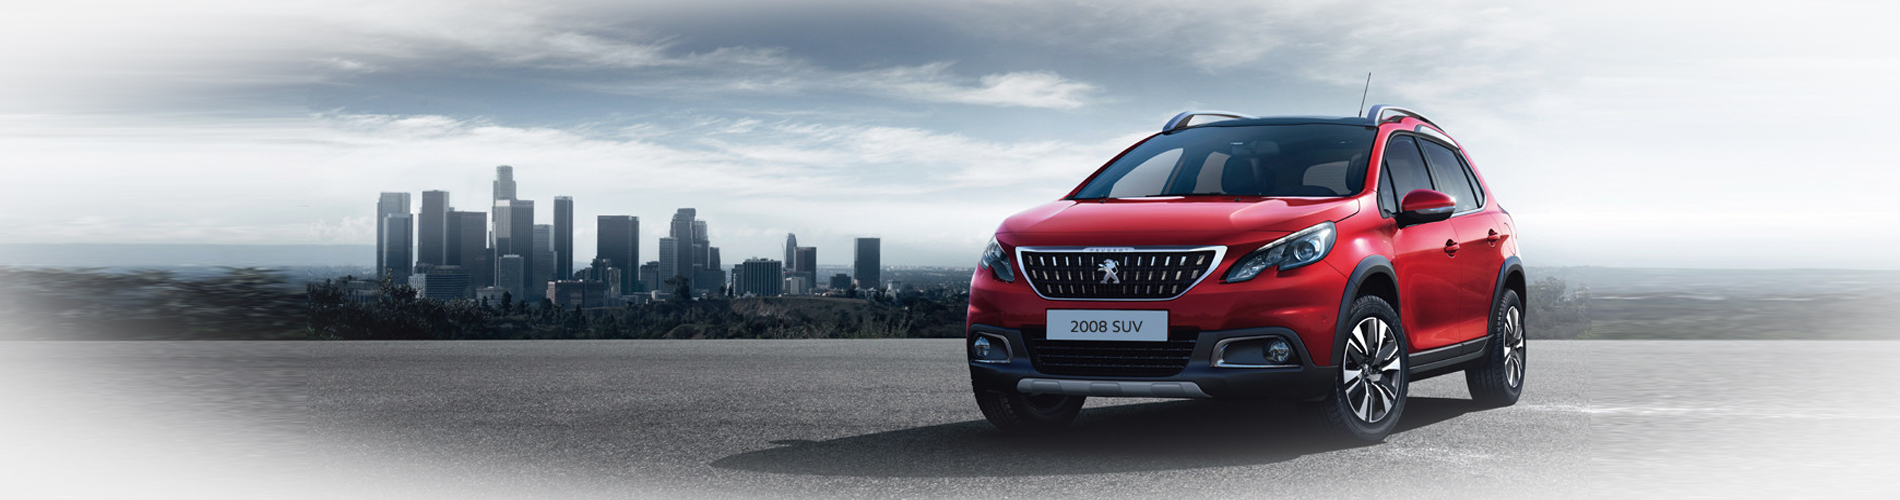 Peugeot 2008 SUV Wycliffe Peugeot Rugby